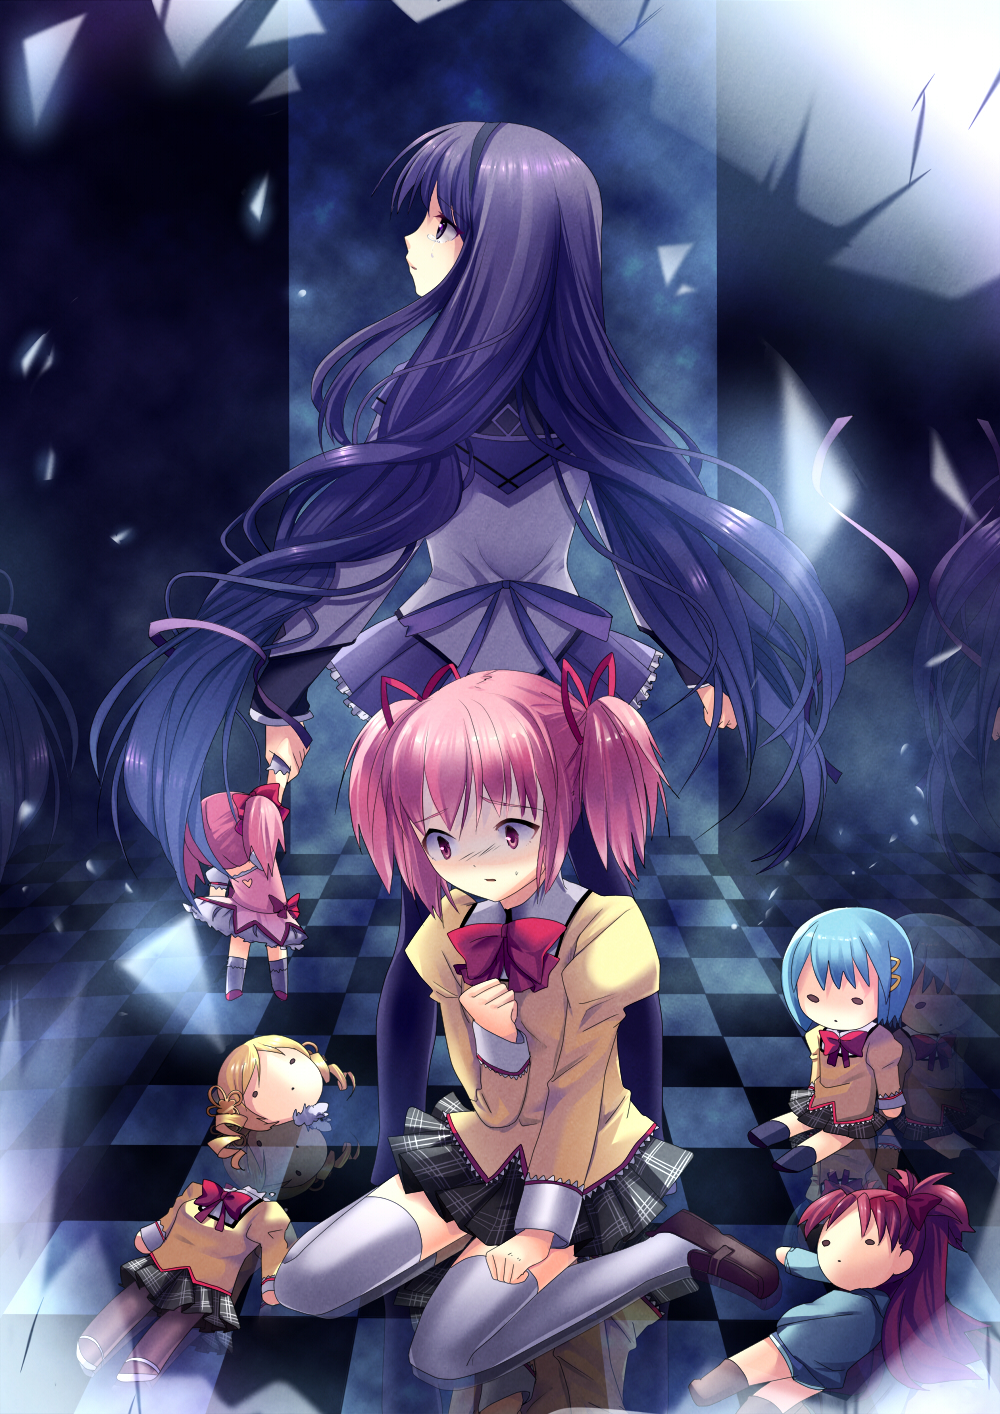 the final madoka less thursday